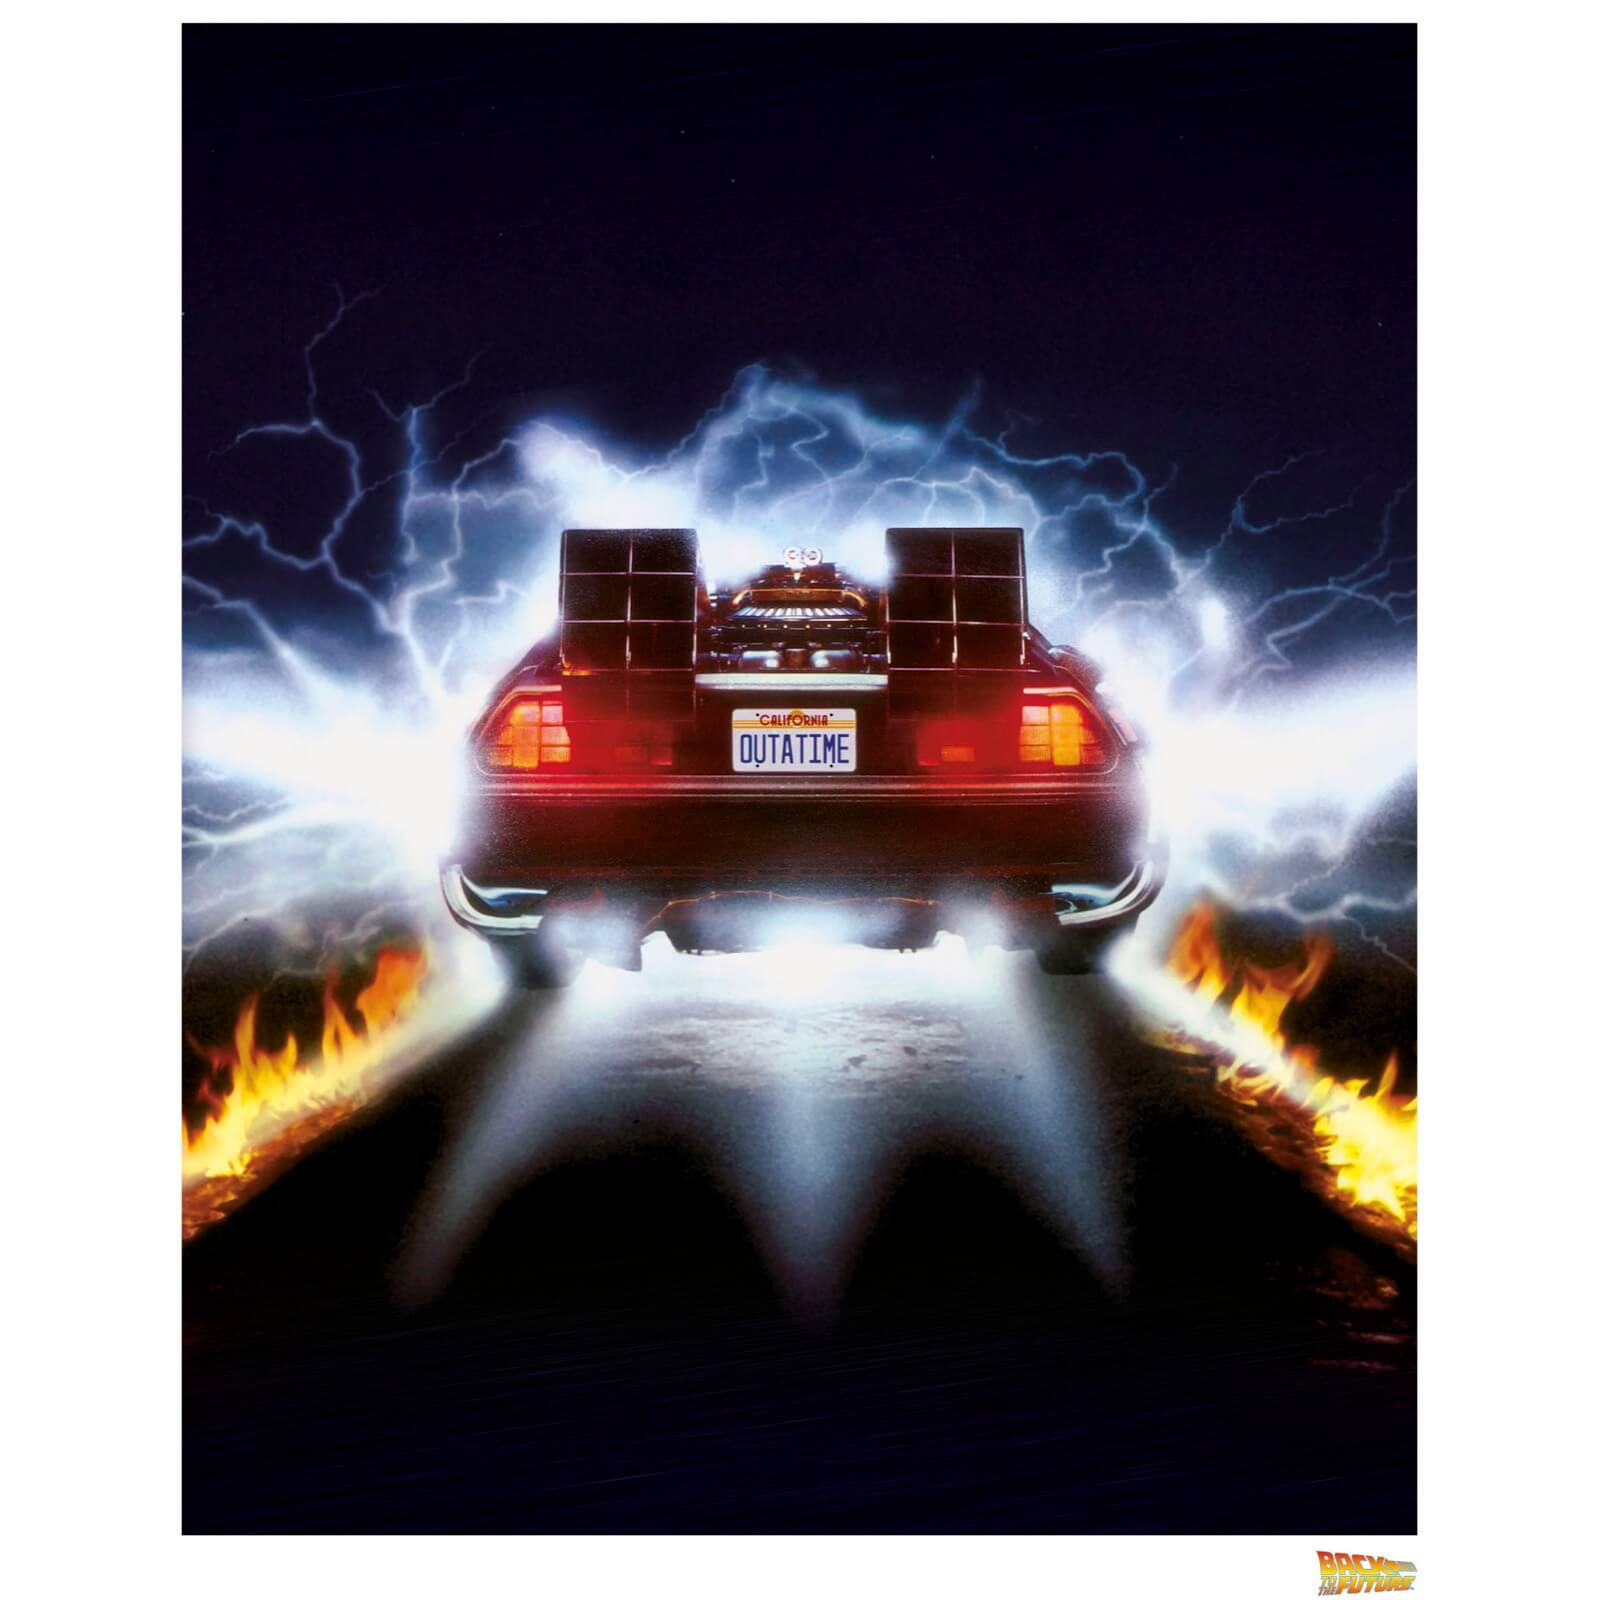 Back to the Future Delorean Rear View - Limited Edition Art Print